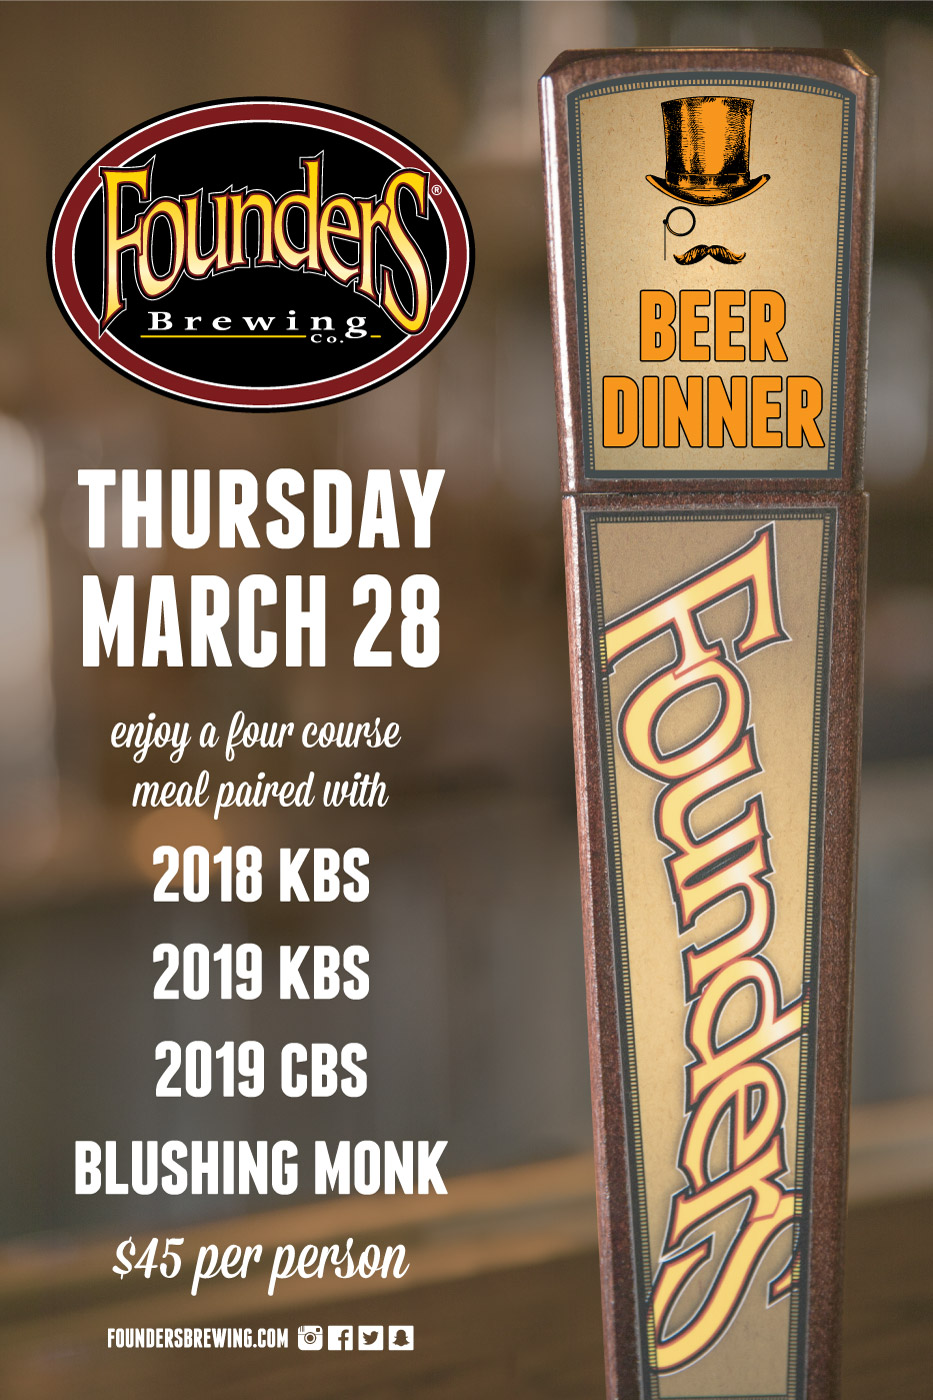 Thursday, March 28 $45 per person - Click Here for Tickets